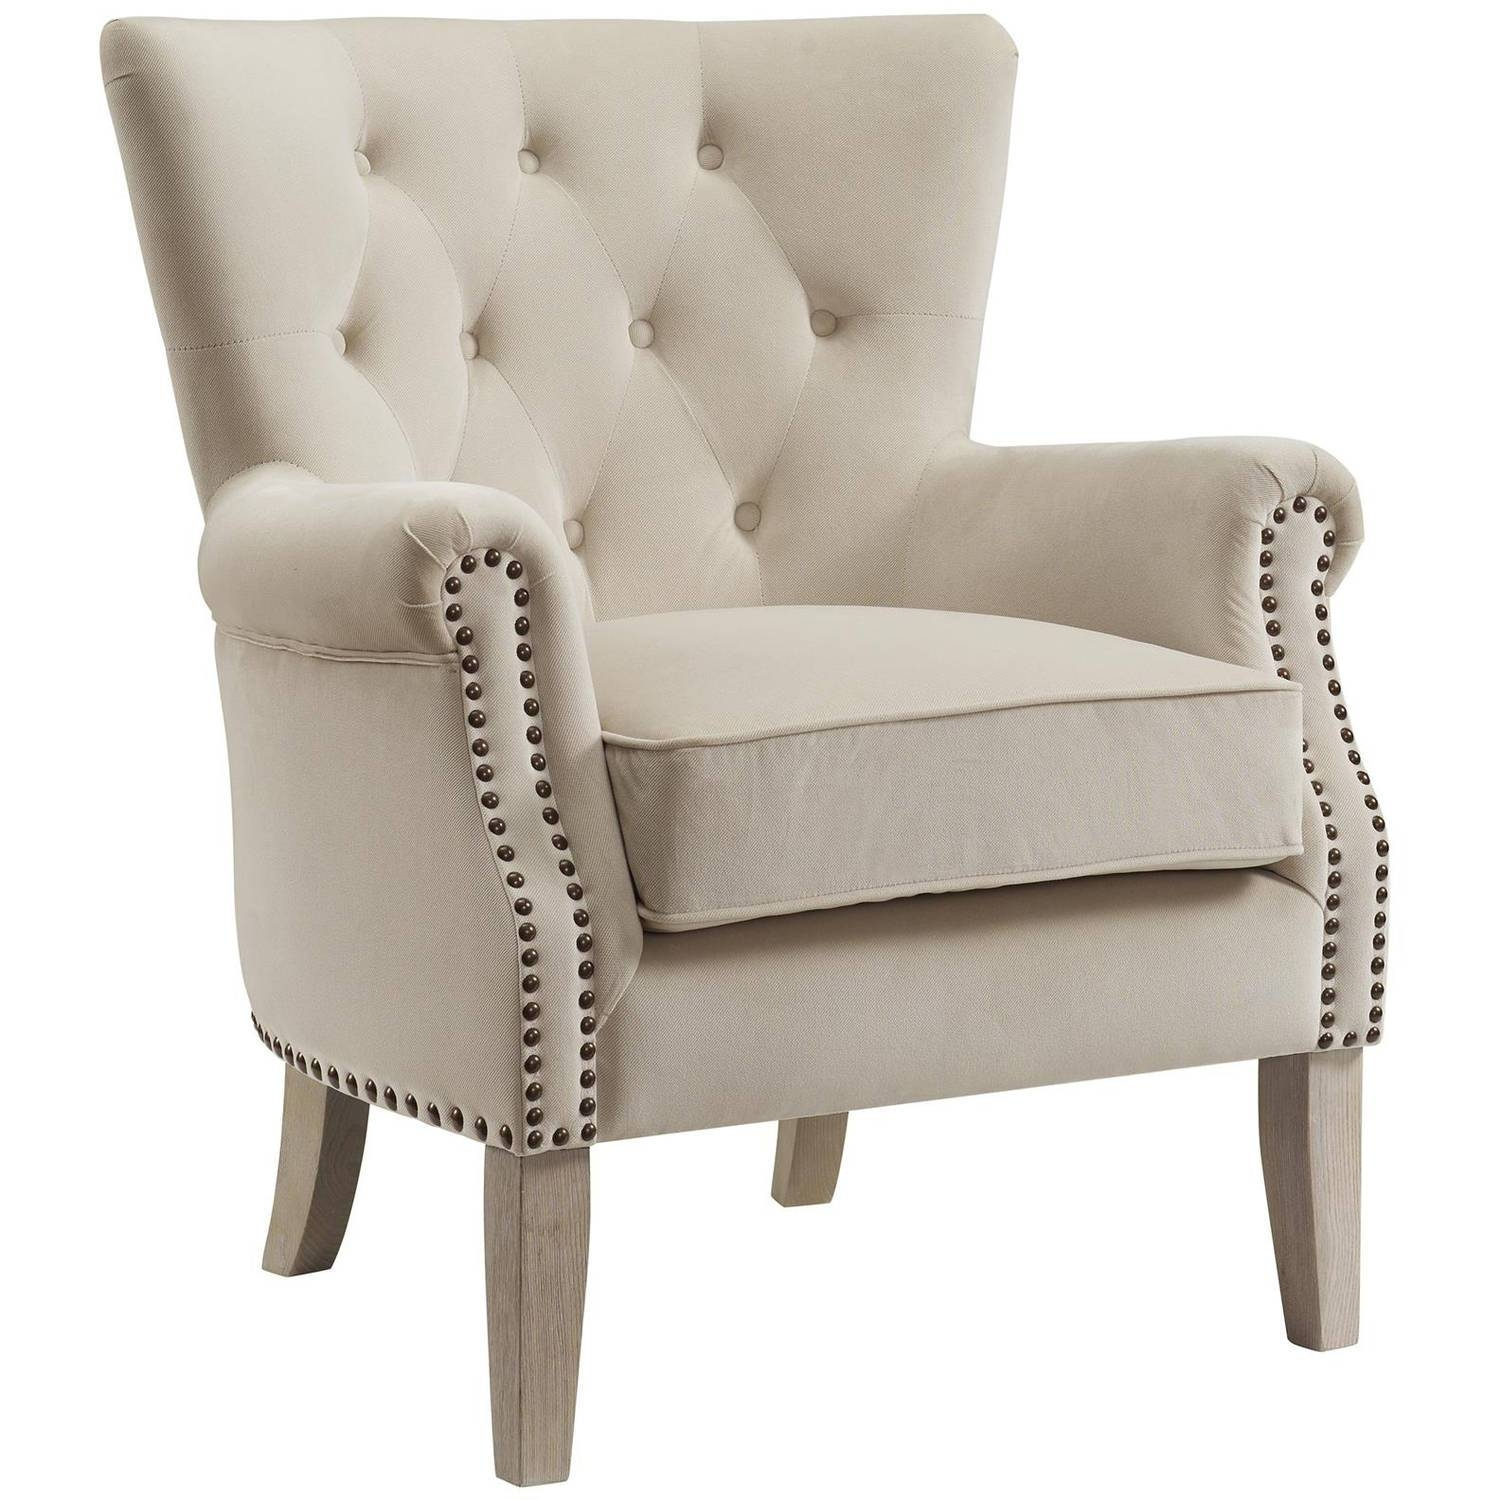 Living Room Furniture | Walmart in Accent Sofa Chairs (Image 21 of 30)